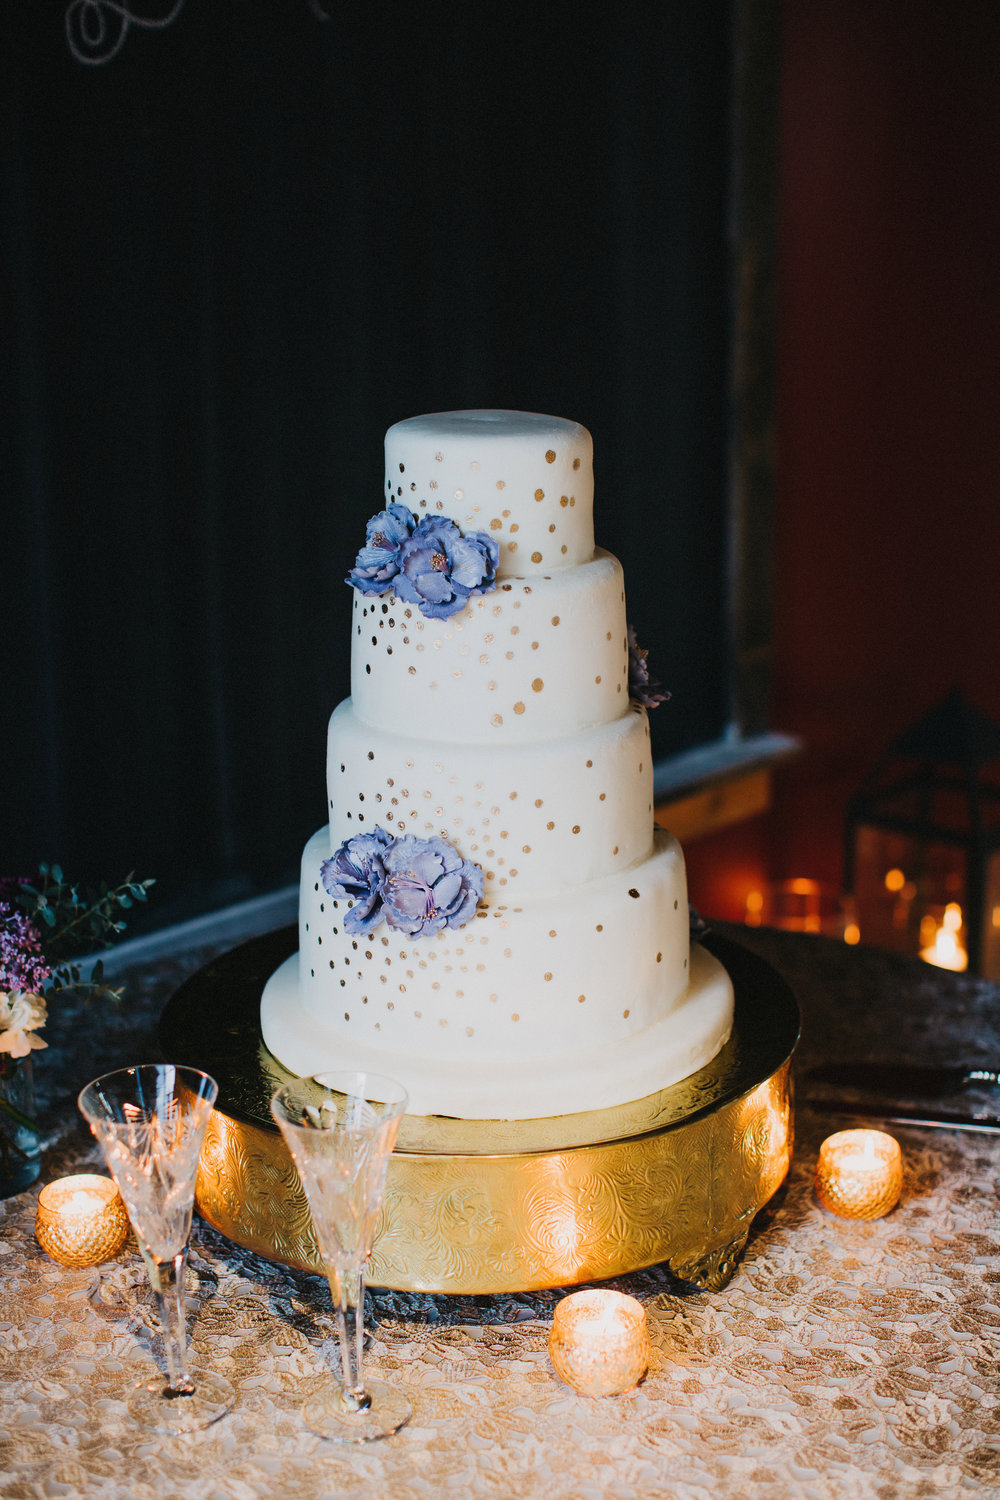 Wedding cake - white and blue | Edible Art Bakery of Raleigh